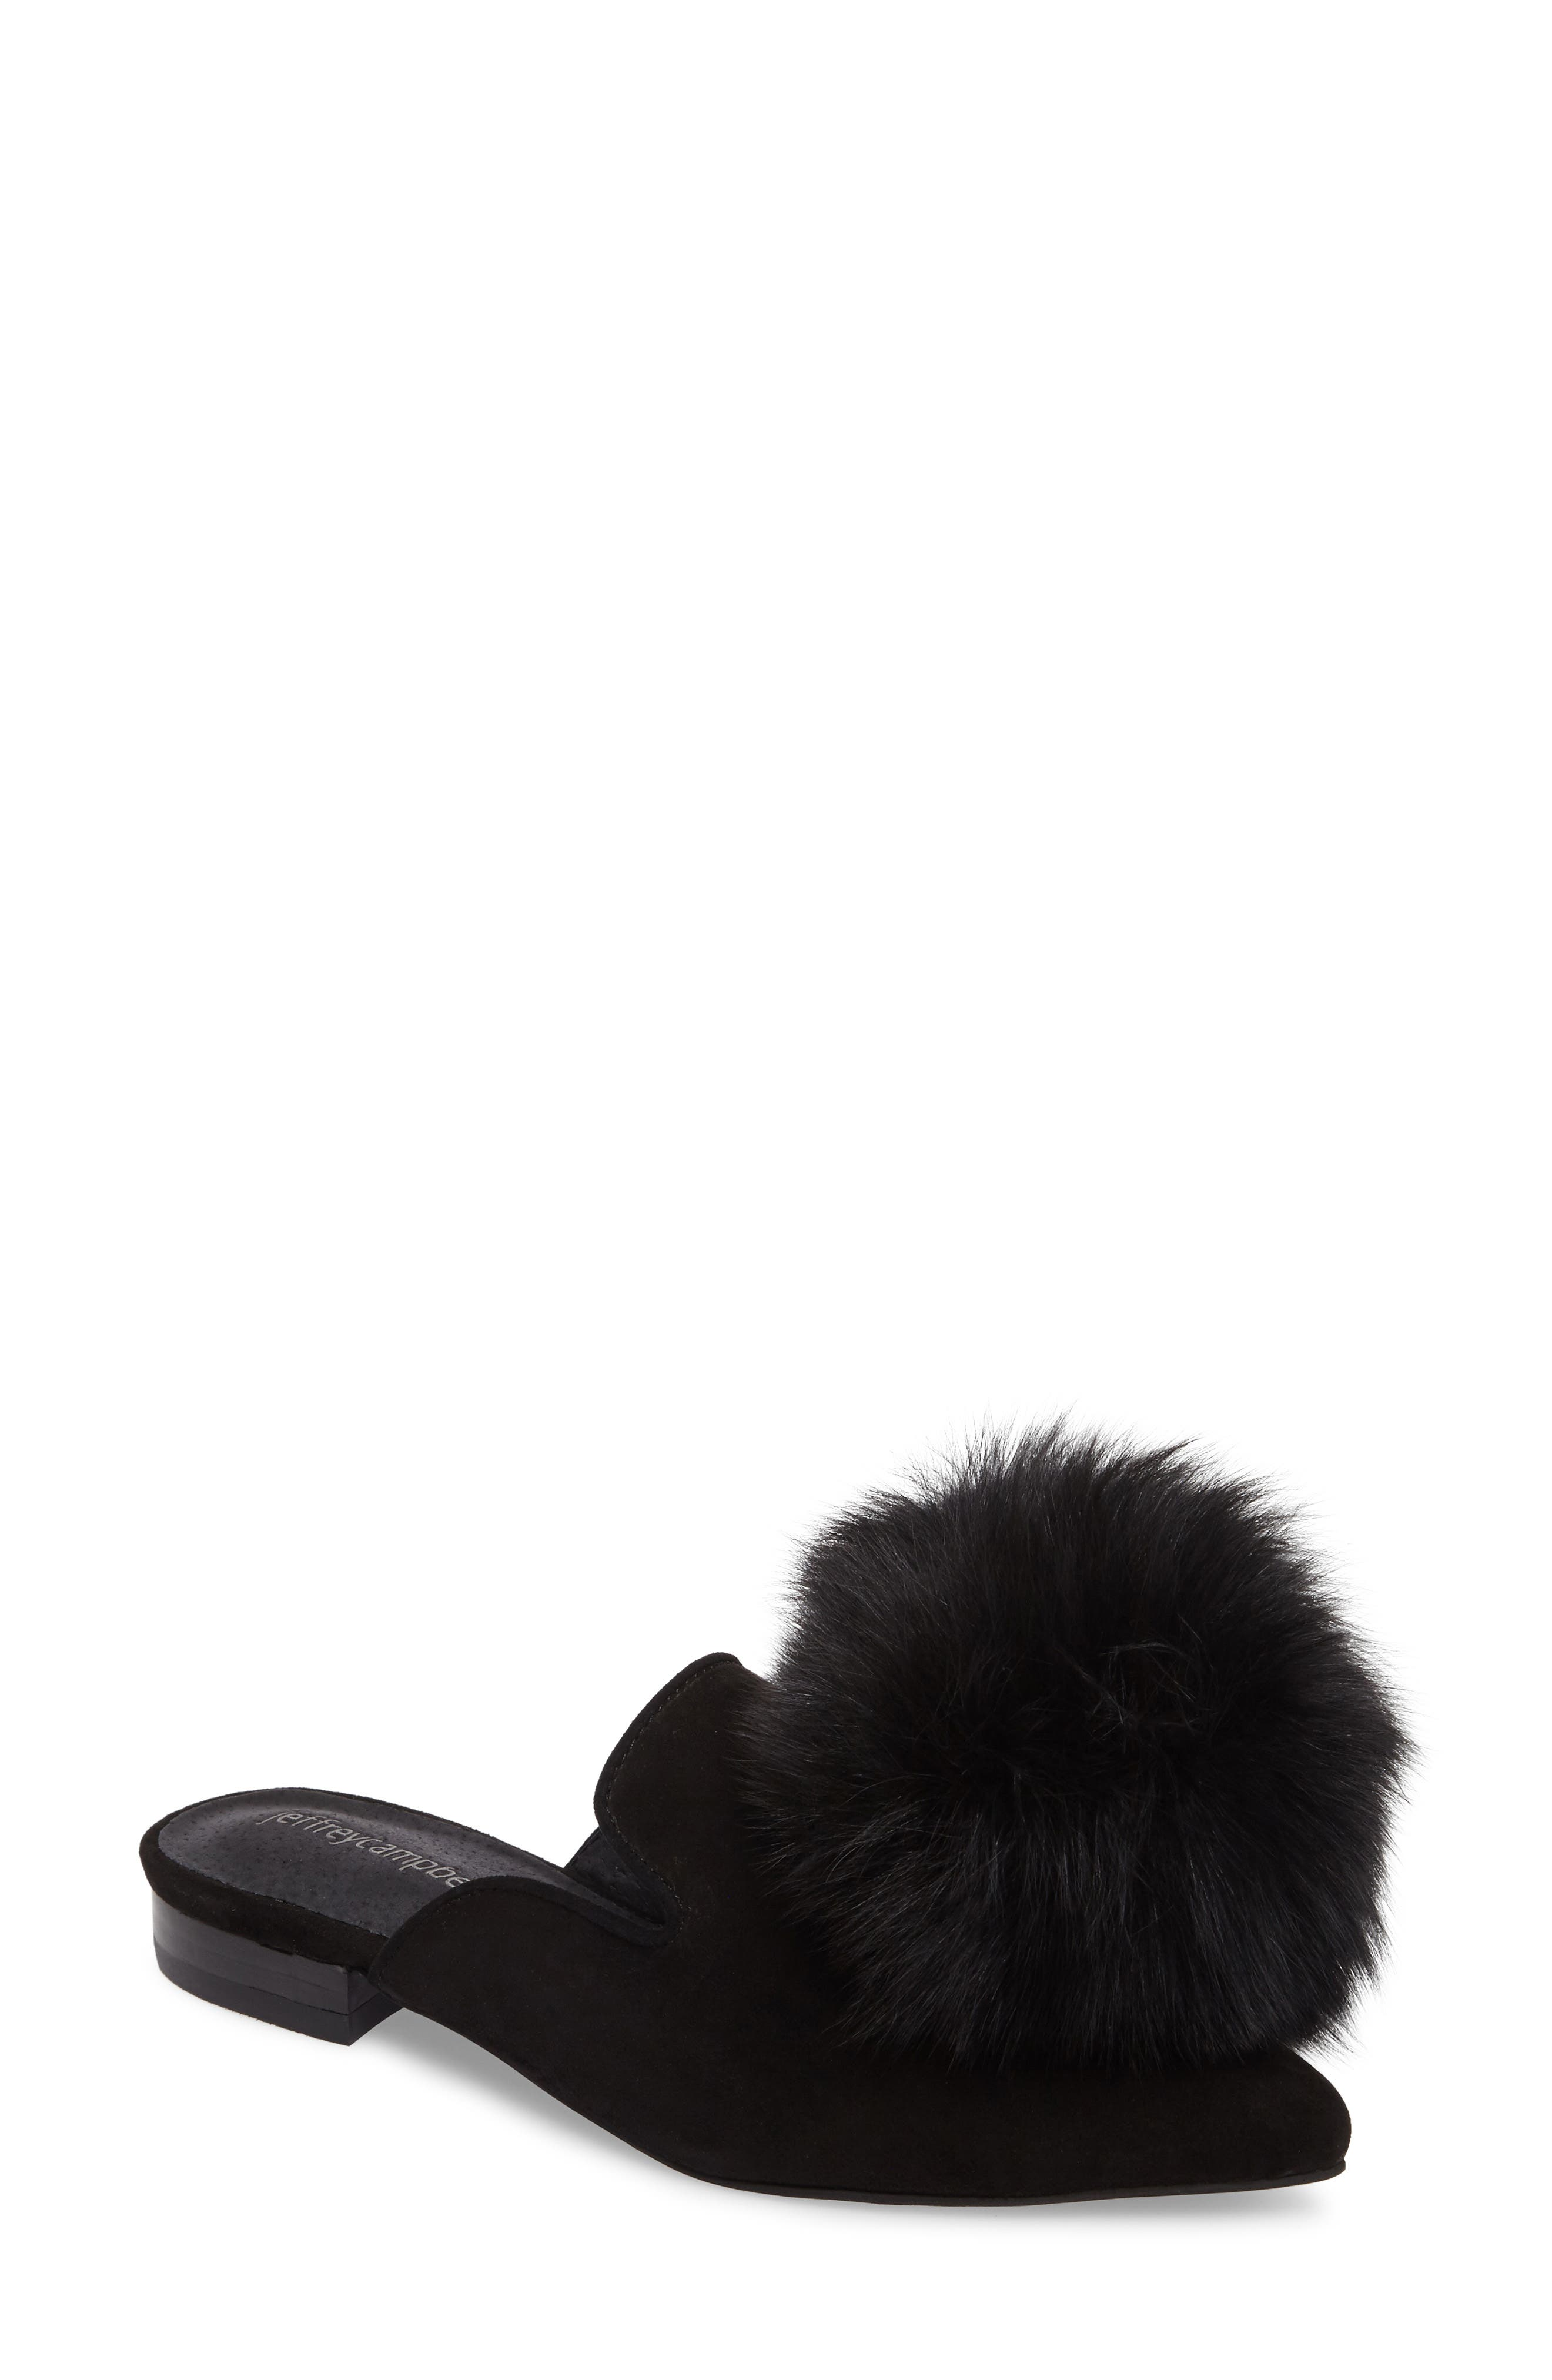 Alternate Image 1 Selected - Jeffrey Campbell Claes Genuine Fur Pompom Mule (Women)